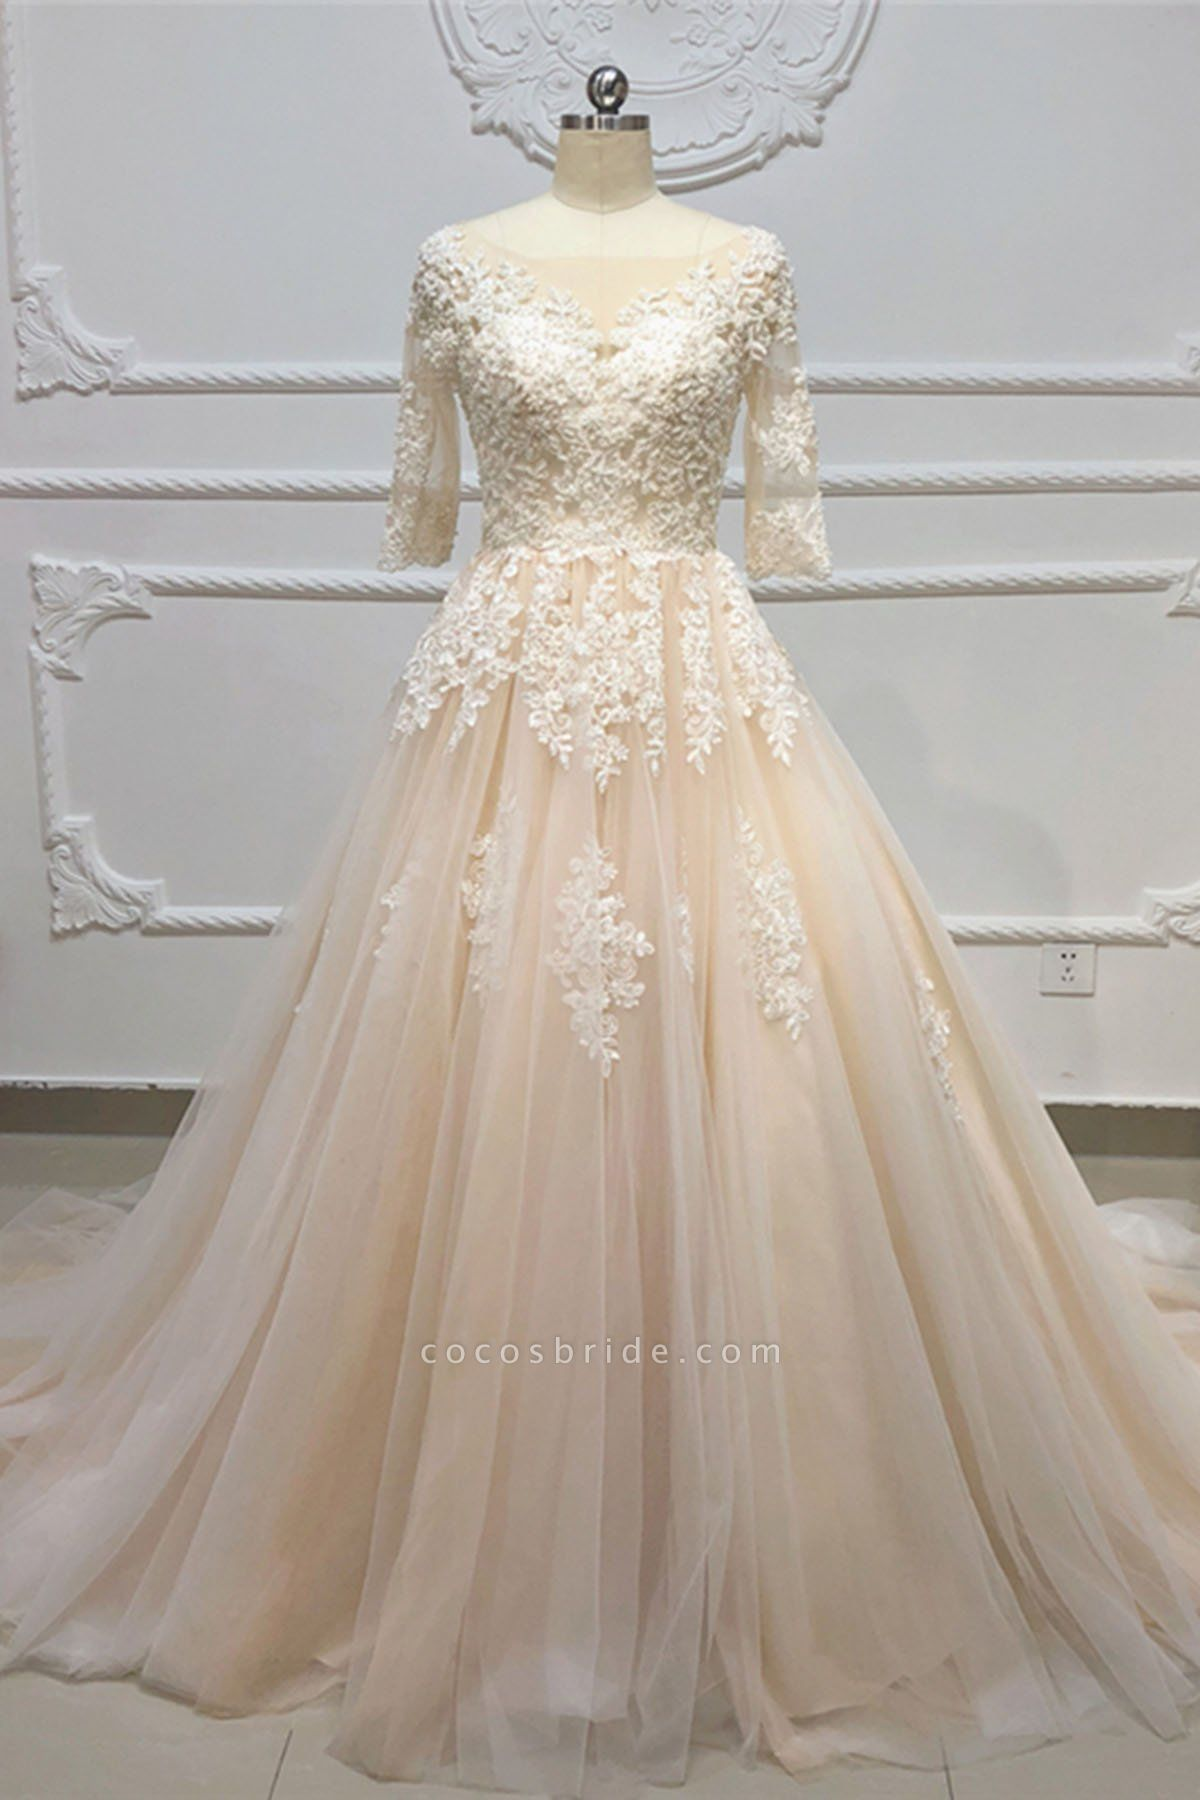 Champagne Tulle White Lace Applique Half Sleeve Long Wedding Dress